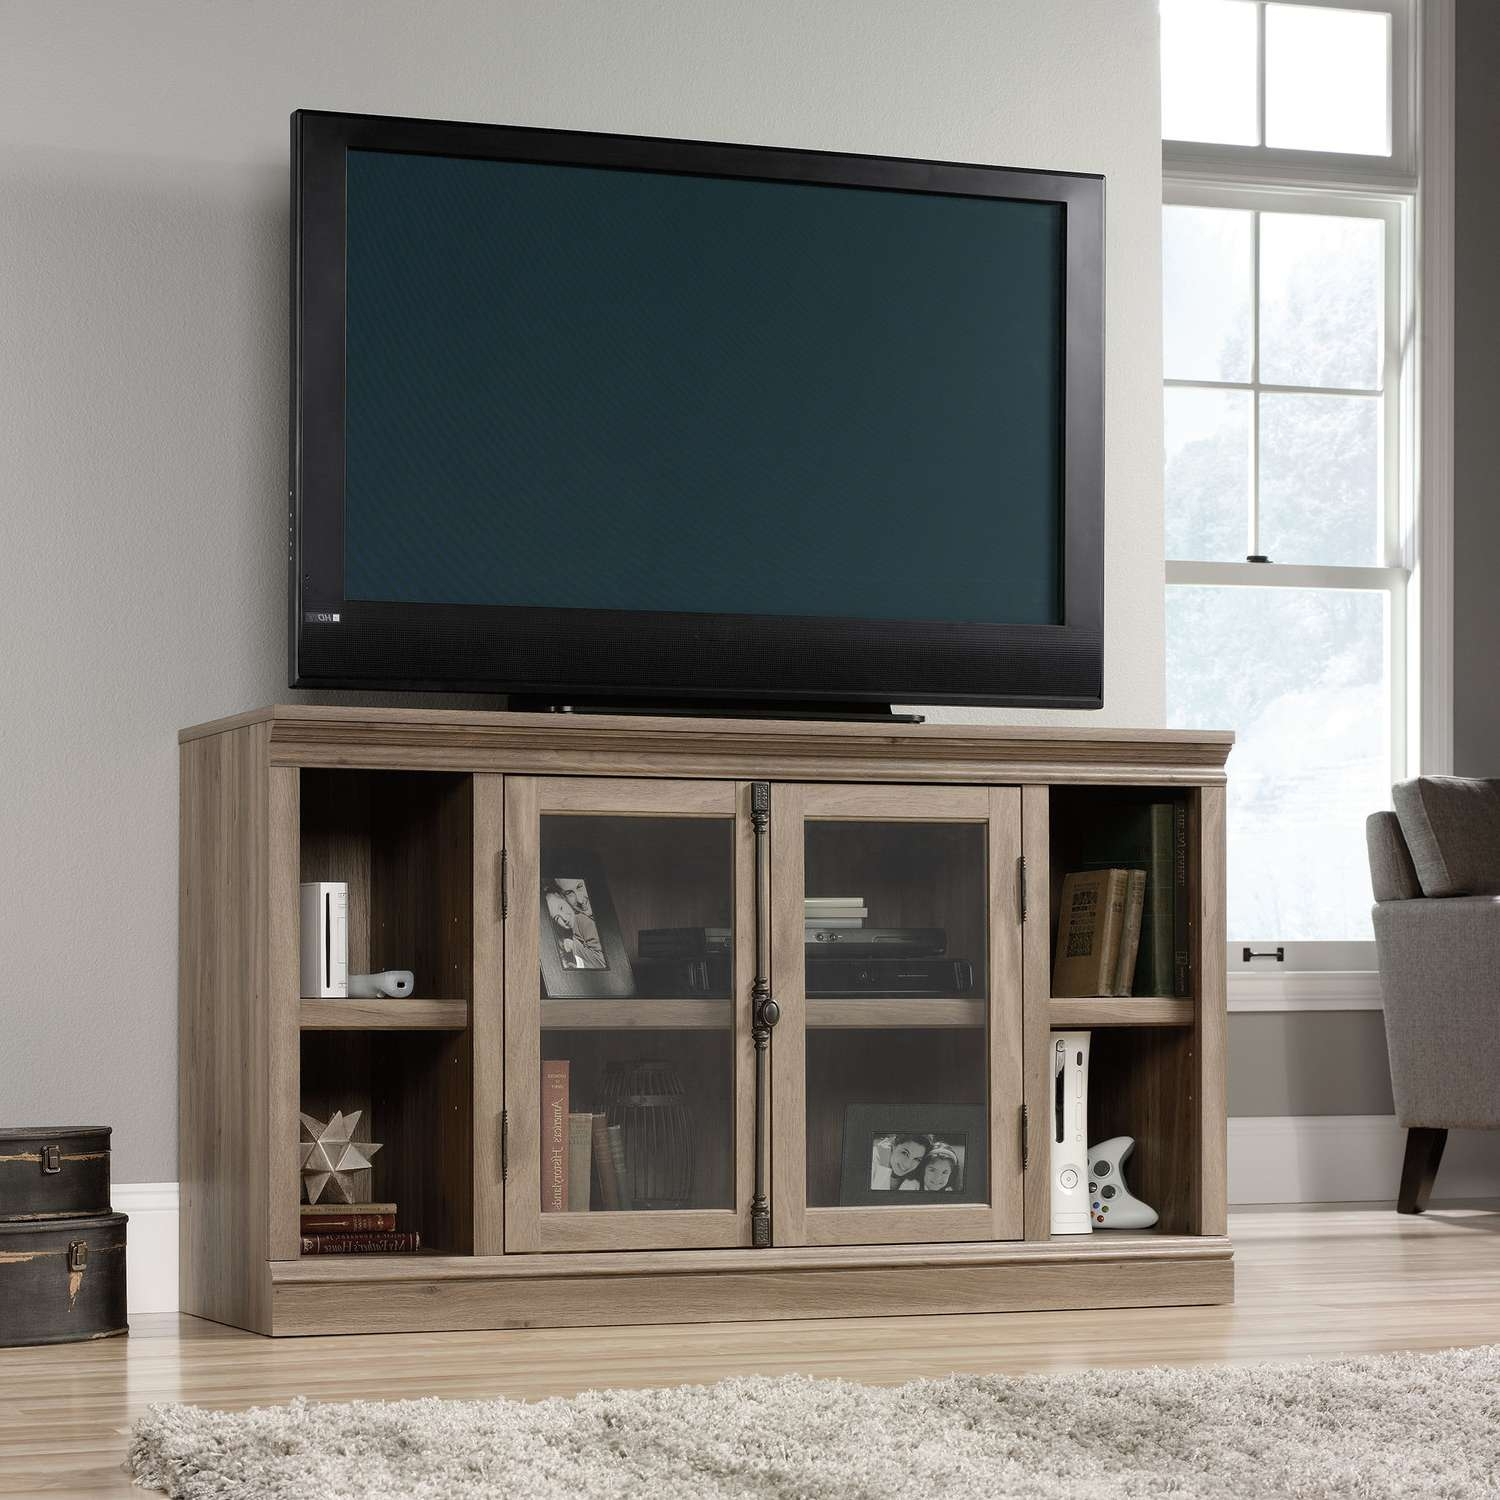 Black Led Tv On Unusual Tv Stands With Stick Game Under Book Plus With Regard To Glass Front Tv Stands (View 5 of 20)